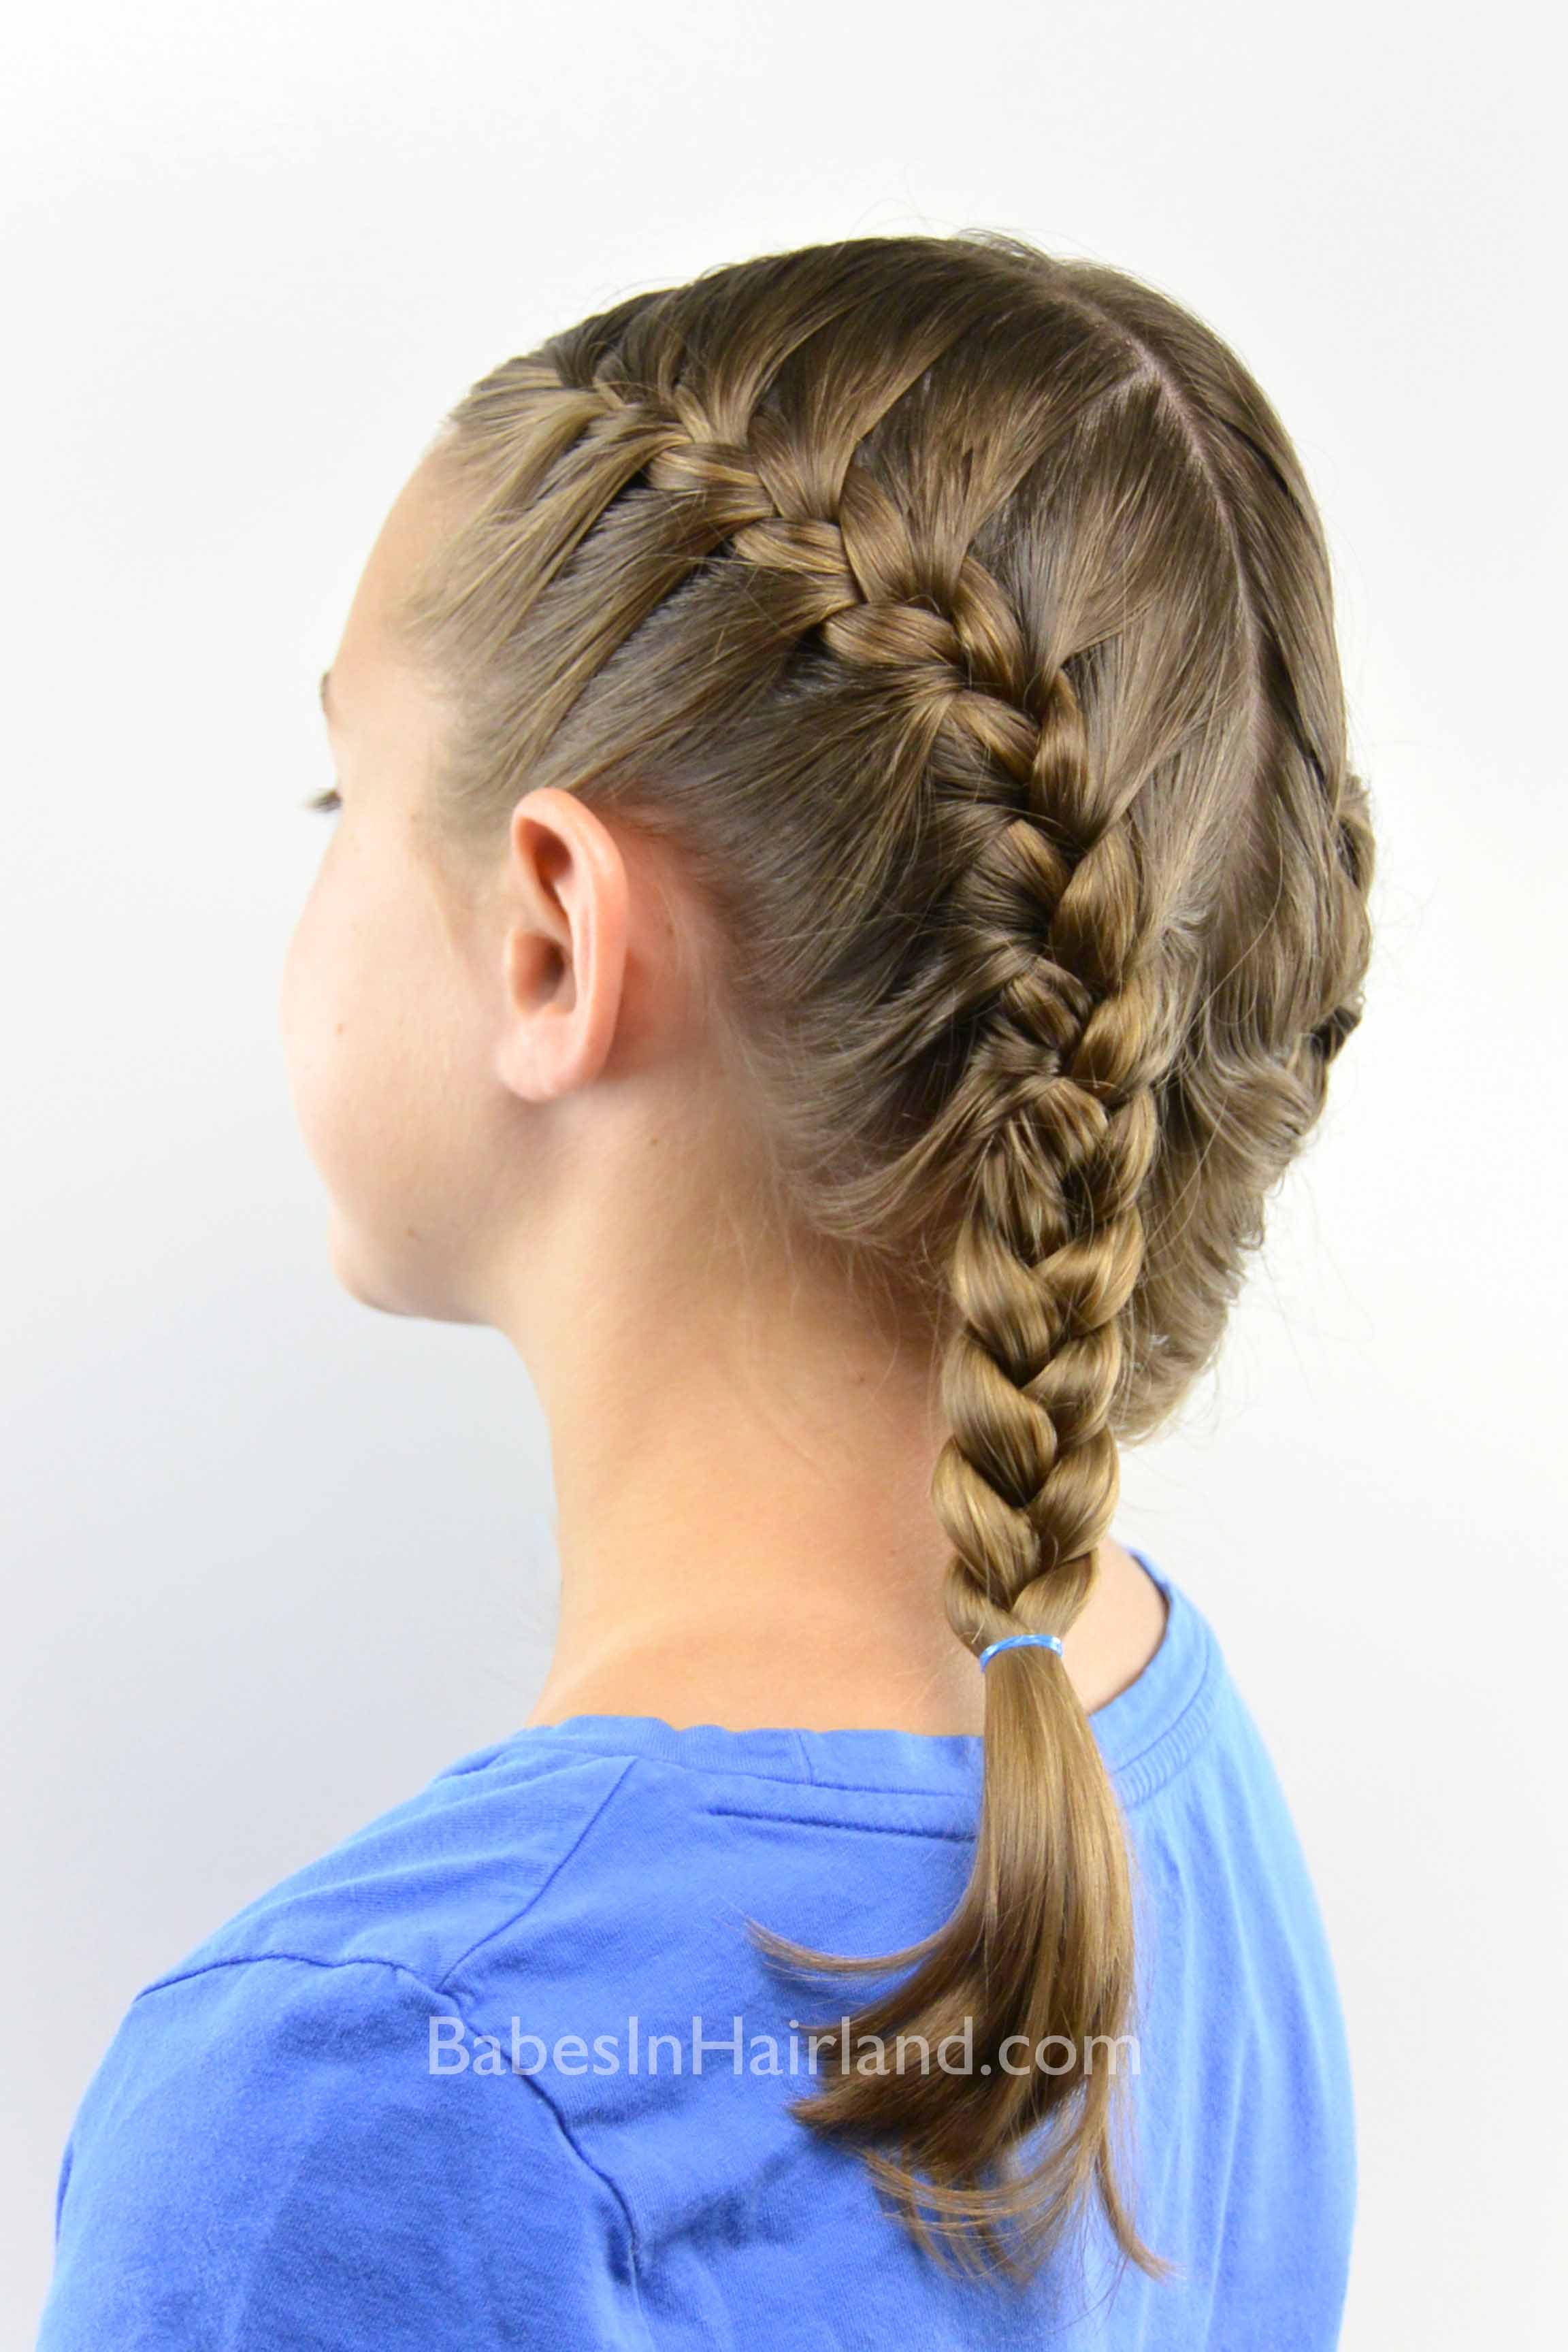 Groovy How To Get A Tight French Braid Babes In Hairland Short Hairstyles Gunalazisus